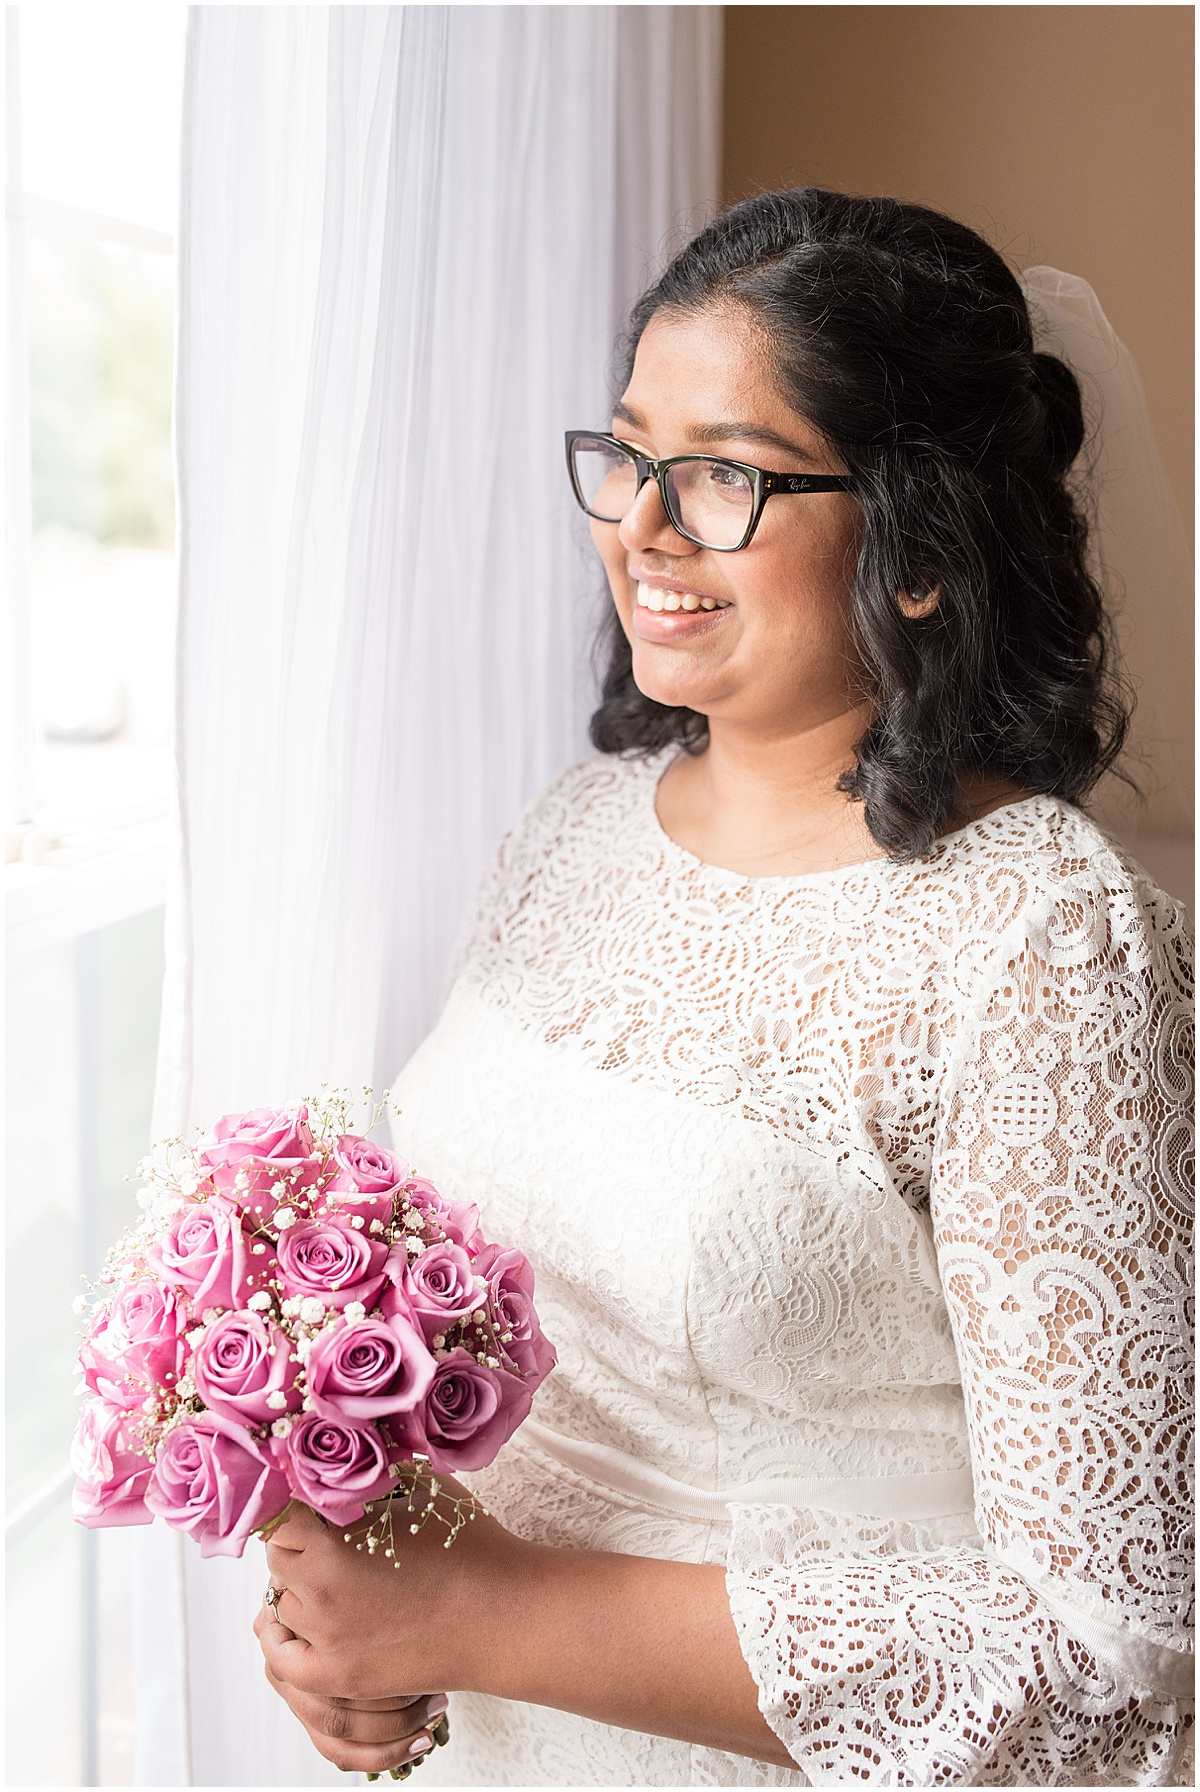 Bride portrait at COVID backyard wedding in West Lafayette, Indiana by Victoria Rayburn Photography